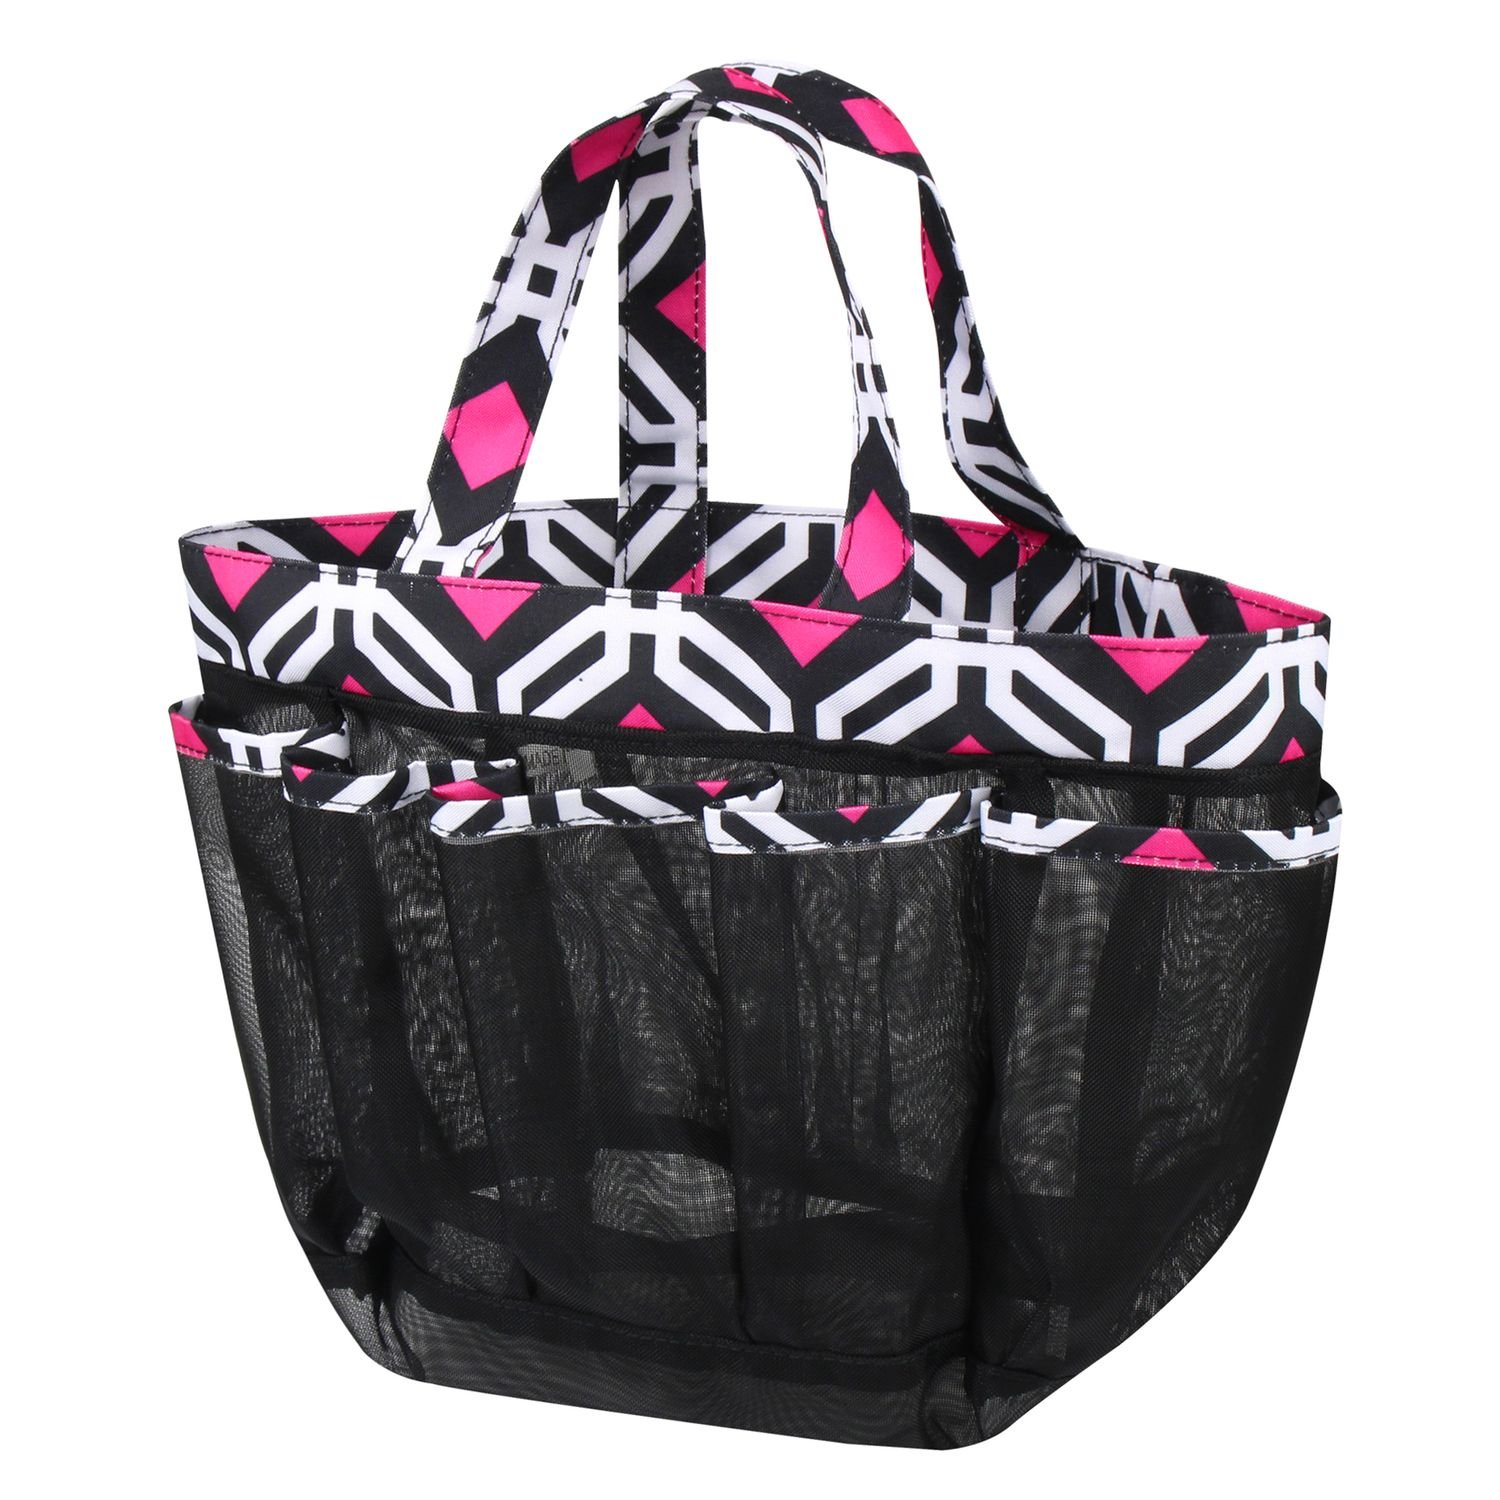 Zodaca Mesh Shower Caddie Tote Bag, Black Graphic by Zodaca (Image #1)